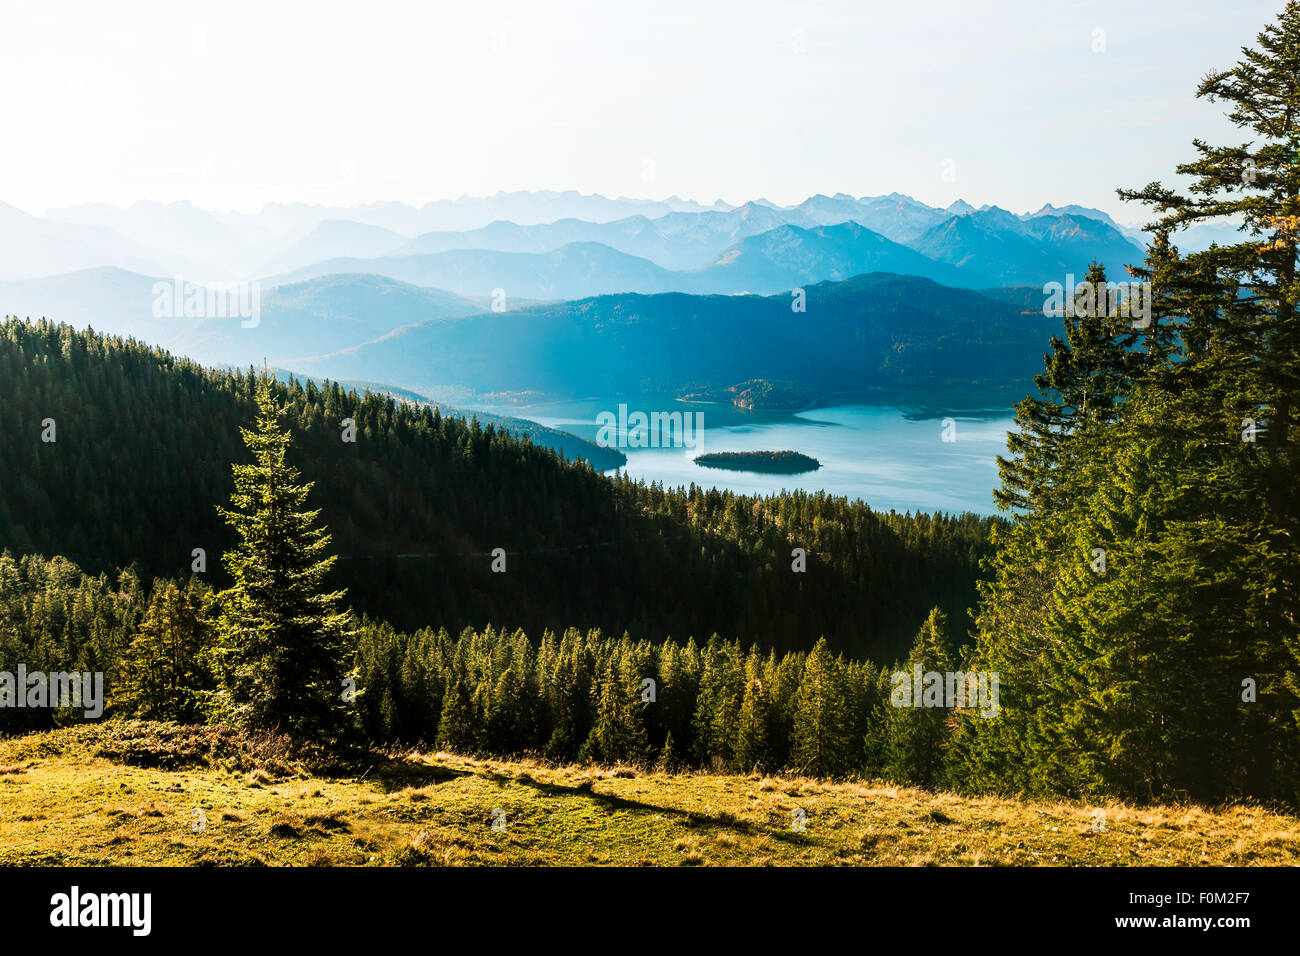 View from Jochberg to the Walchensee lake and Karwendel mountains, Bavaria, Germany - Stock Image